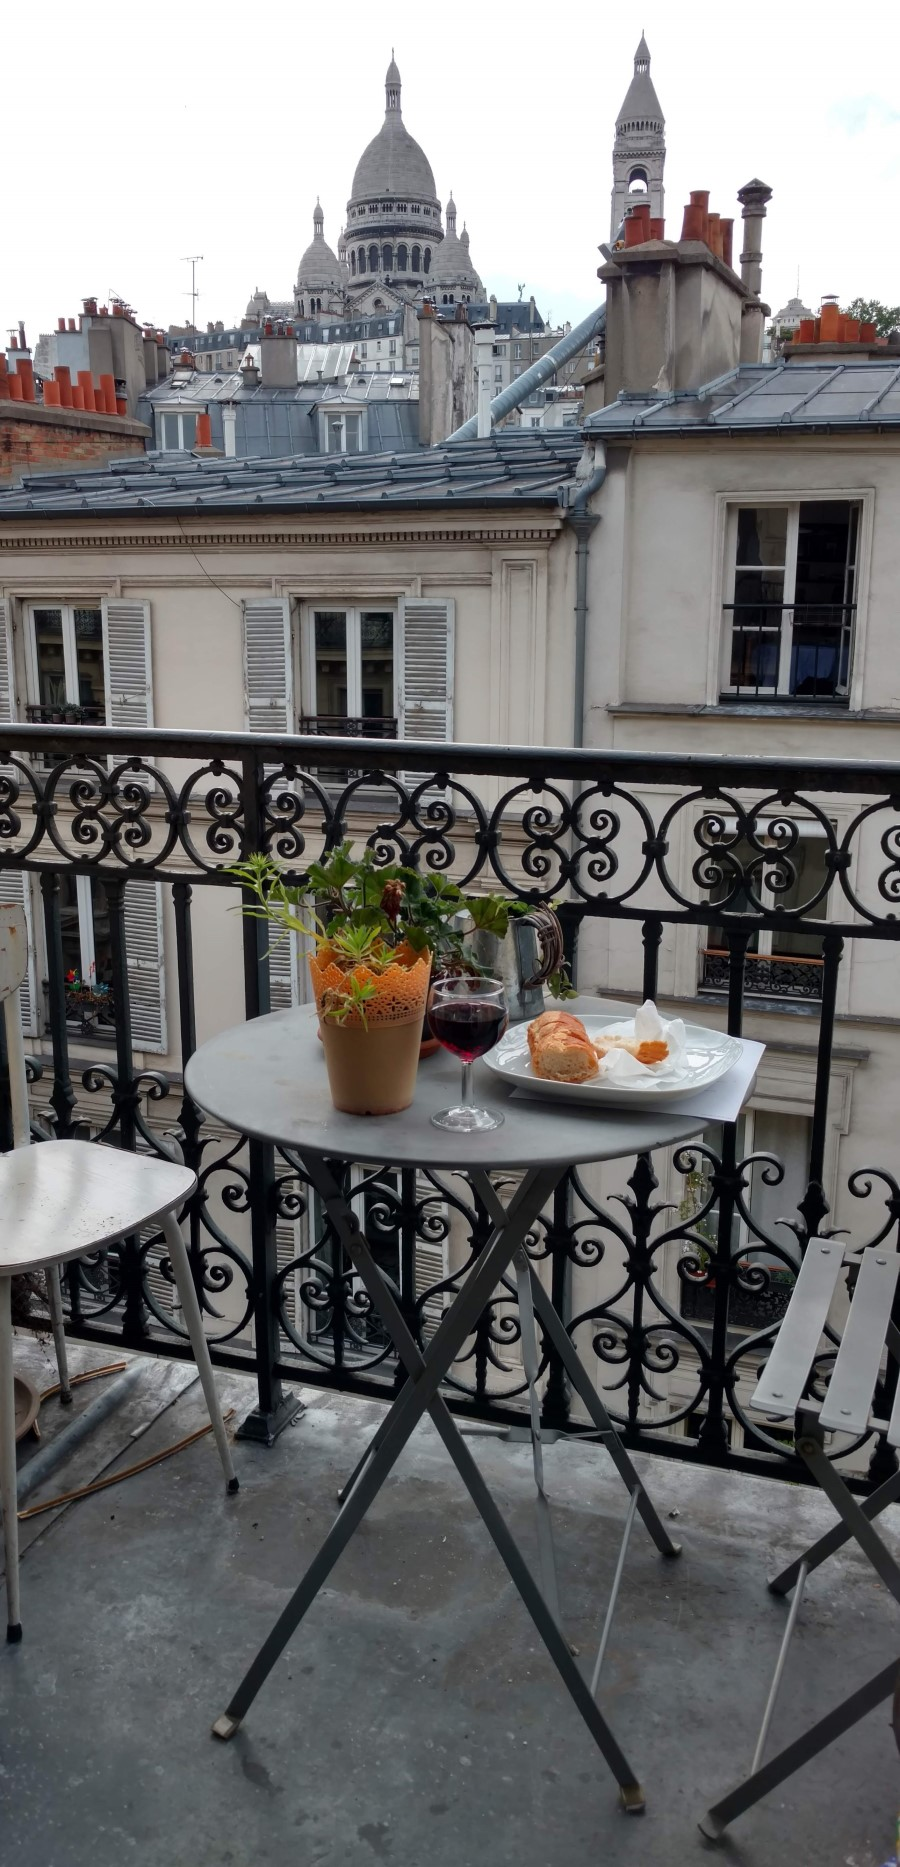 The balcony of my Airbnb home in Montmartre, Paris. A glass of wine and French bread on a table with two chairs, with a view of Sacré-Cœur.